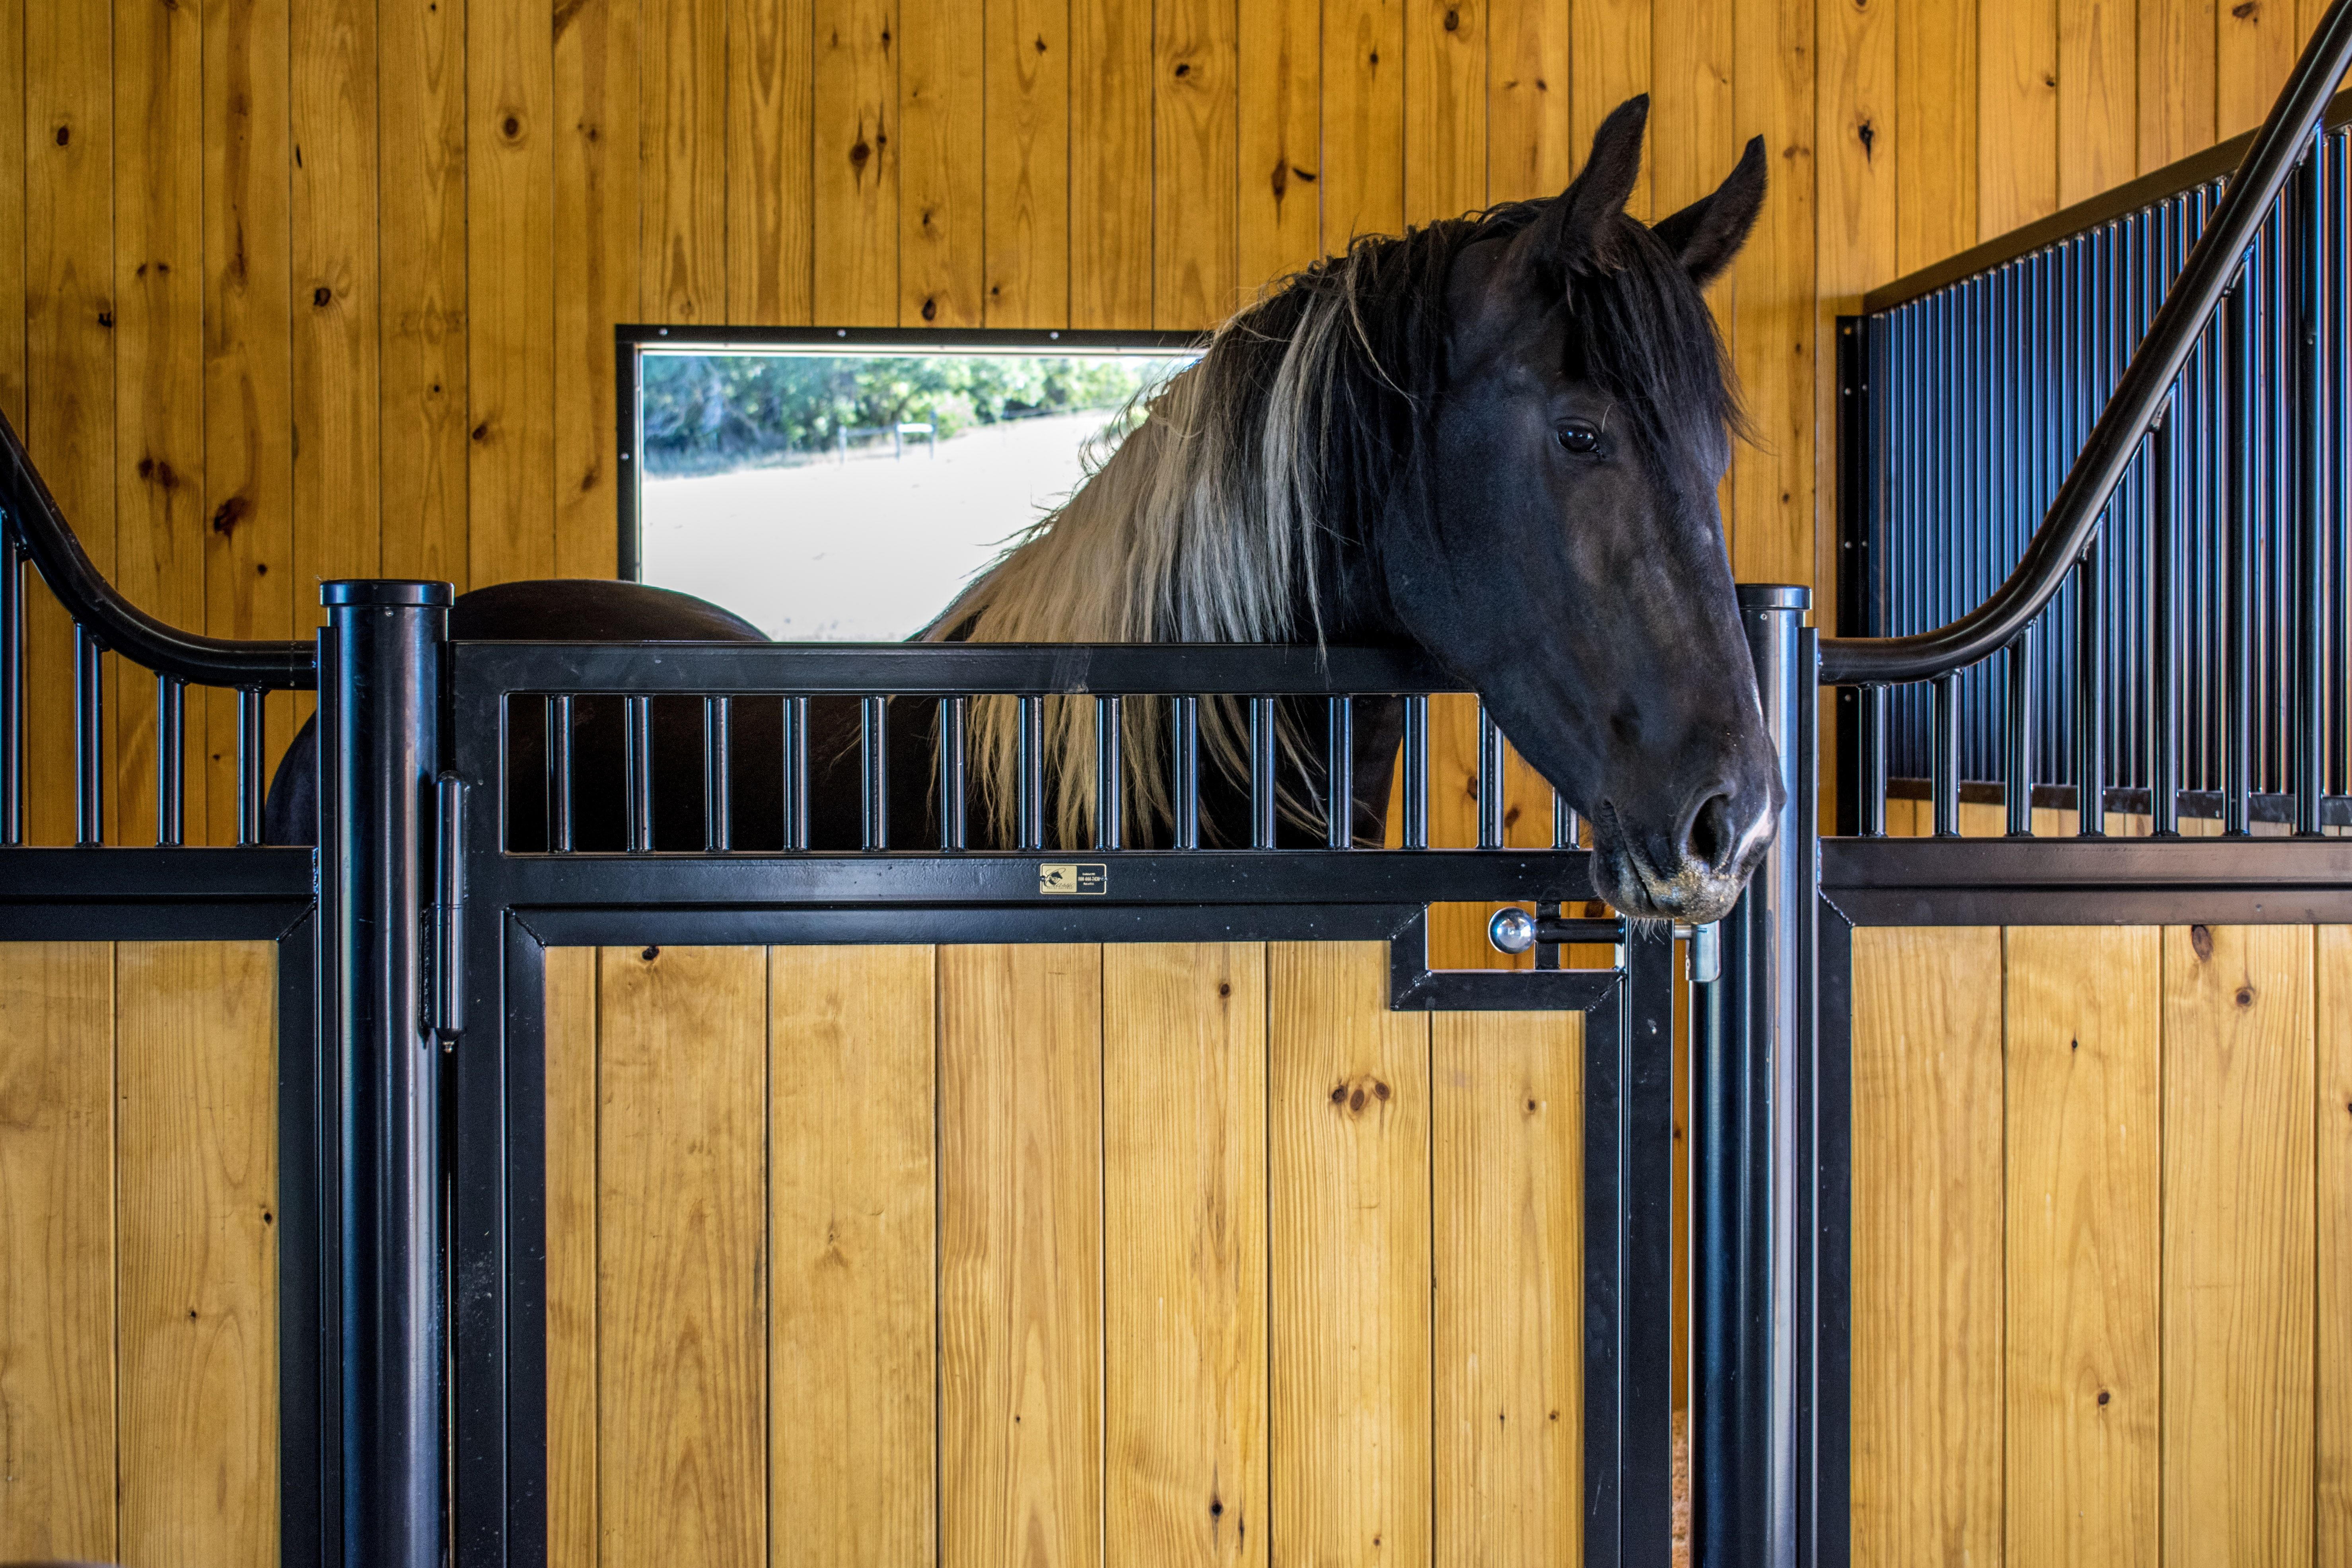 and content builders barn ranches to highlight colorado sp horse pole proud barns property